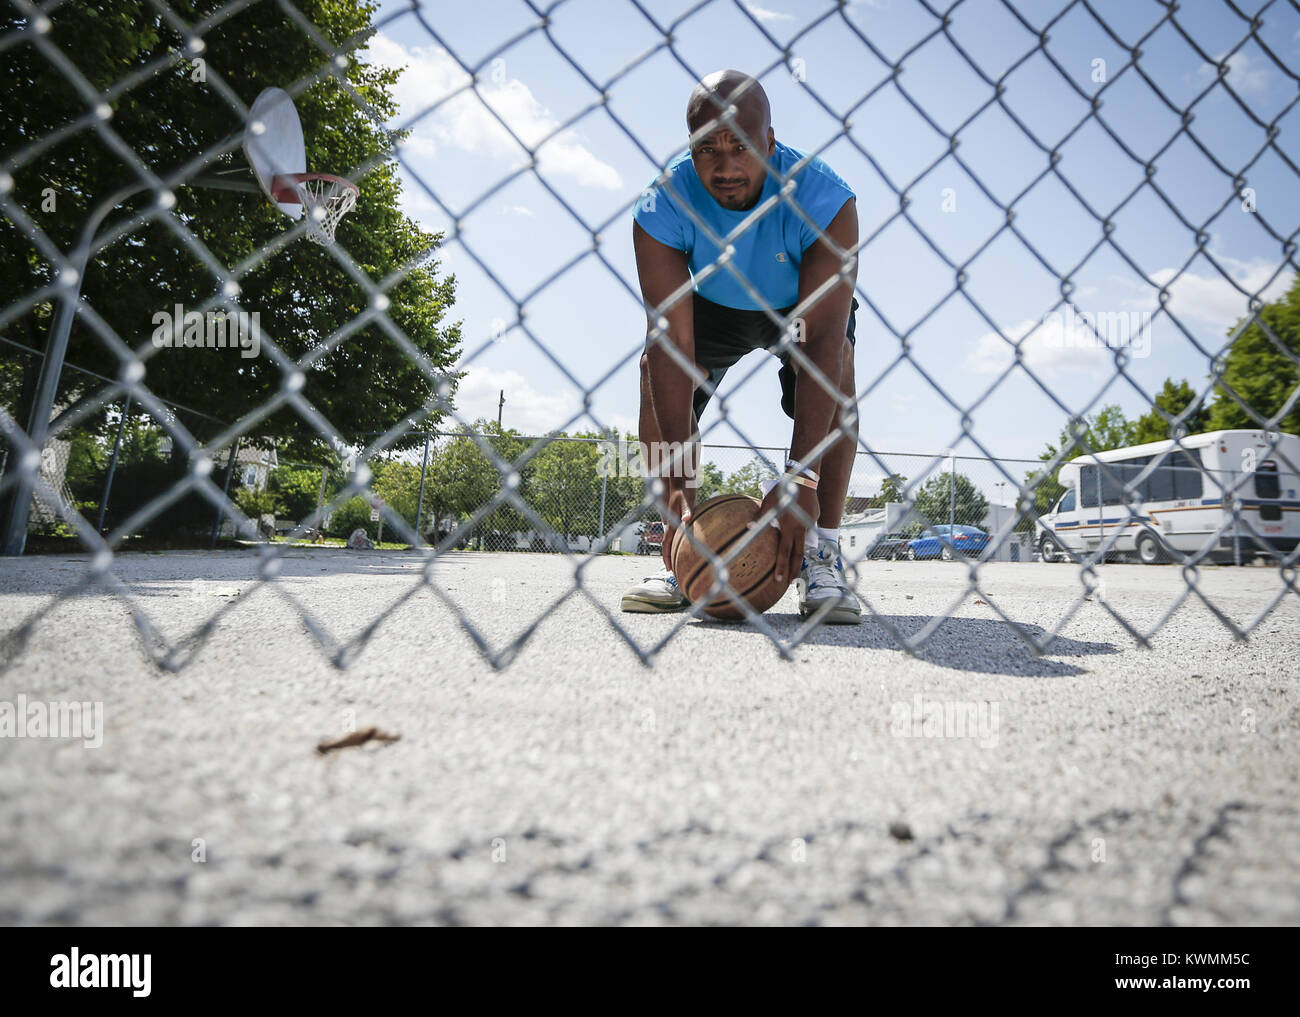 Davenport, Iowa, USA. 5th Aug, 2016. LeShawn Townsend bends down to retrieve his basketball while working out alone - Stock Image